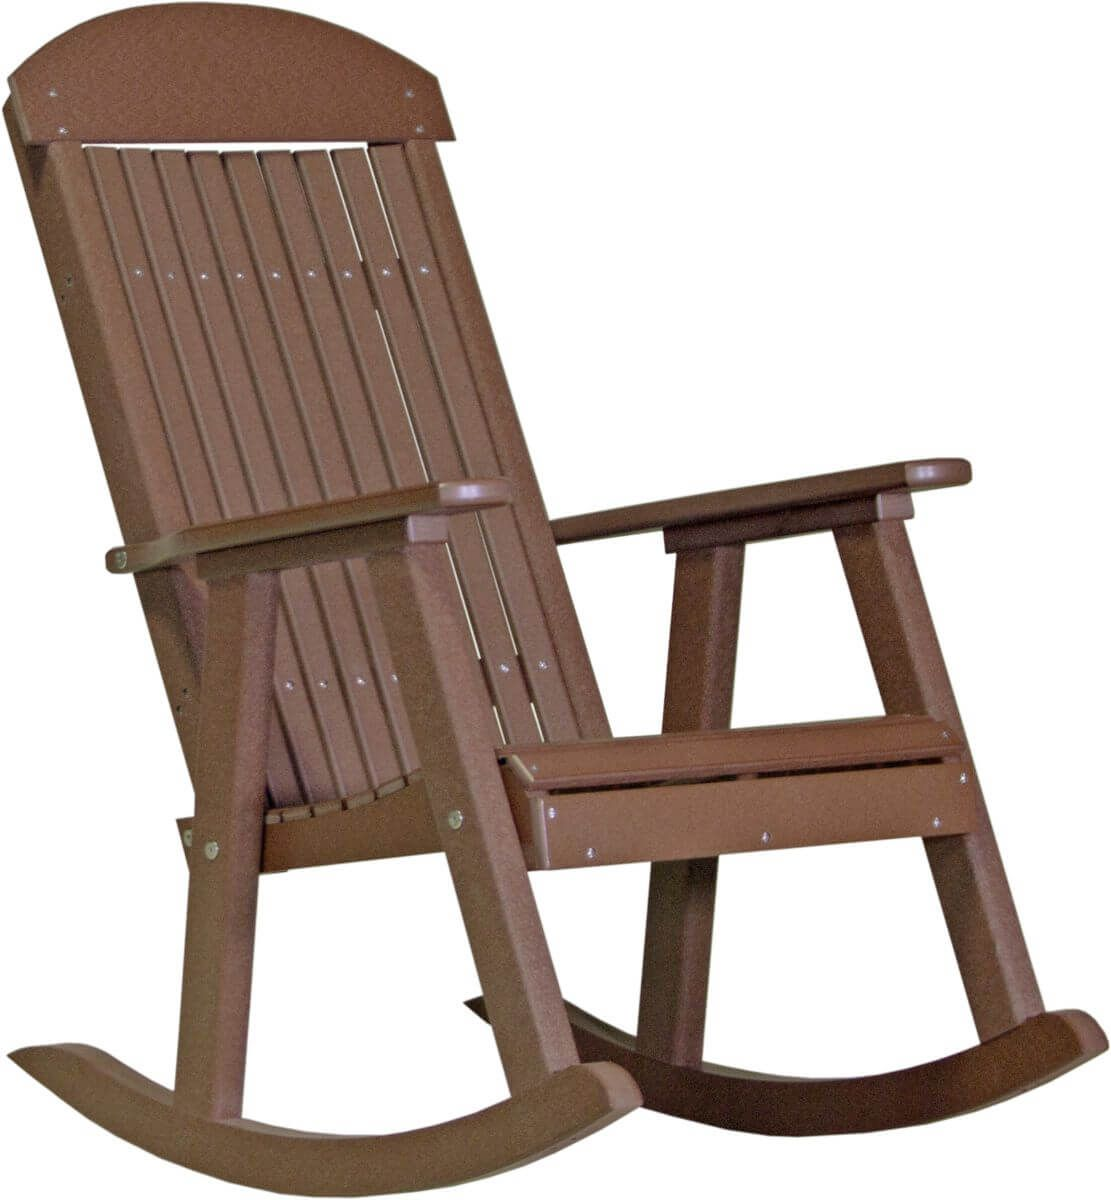 Chestnut Brown Stockton Porch Rocker